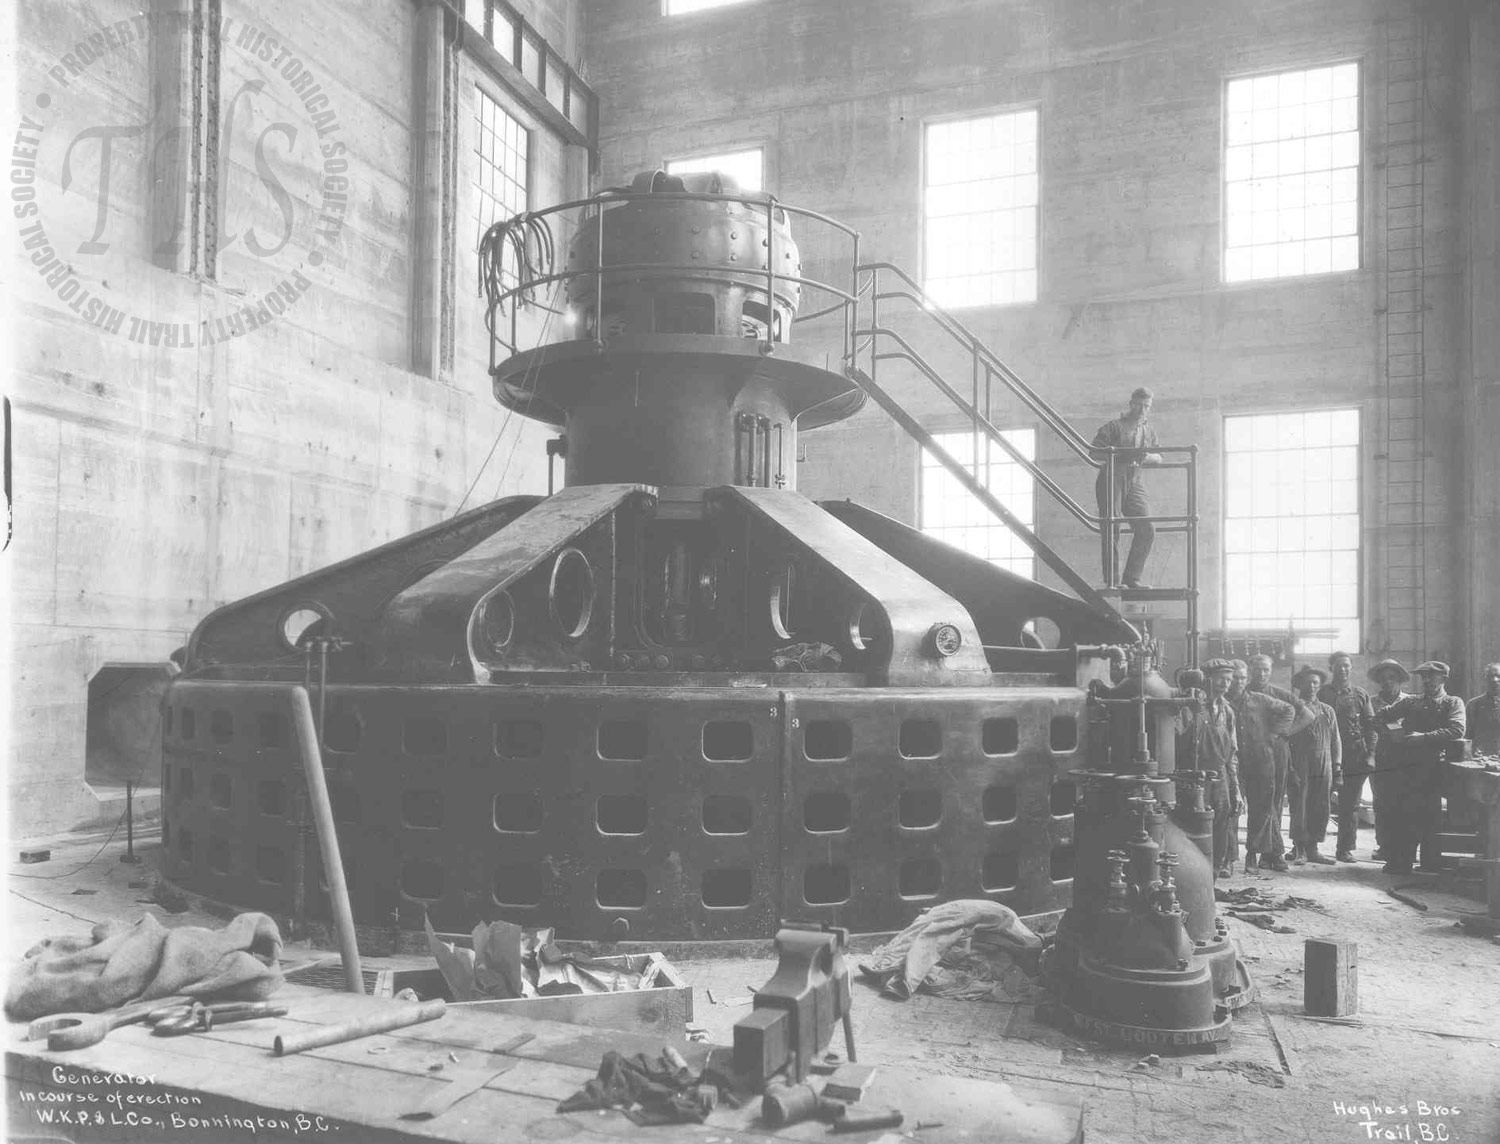 Generator in course of erection at the upgraded #1 plant, Lower Bonnington (Hughes) - 1925